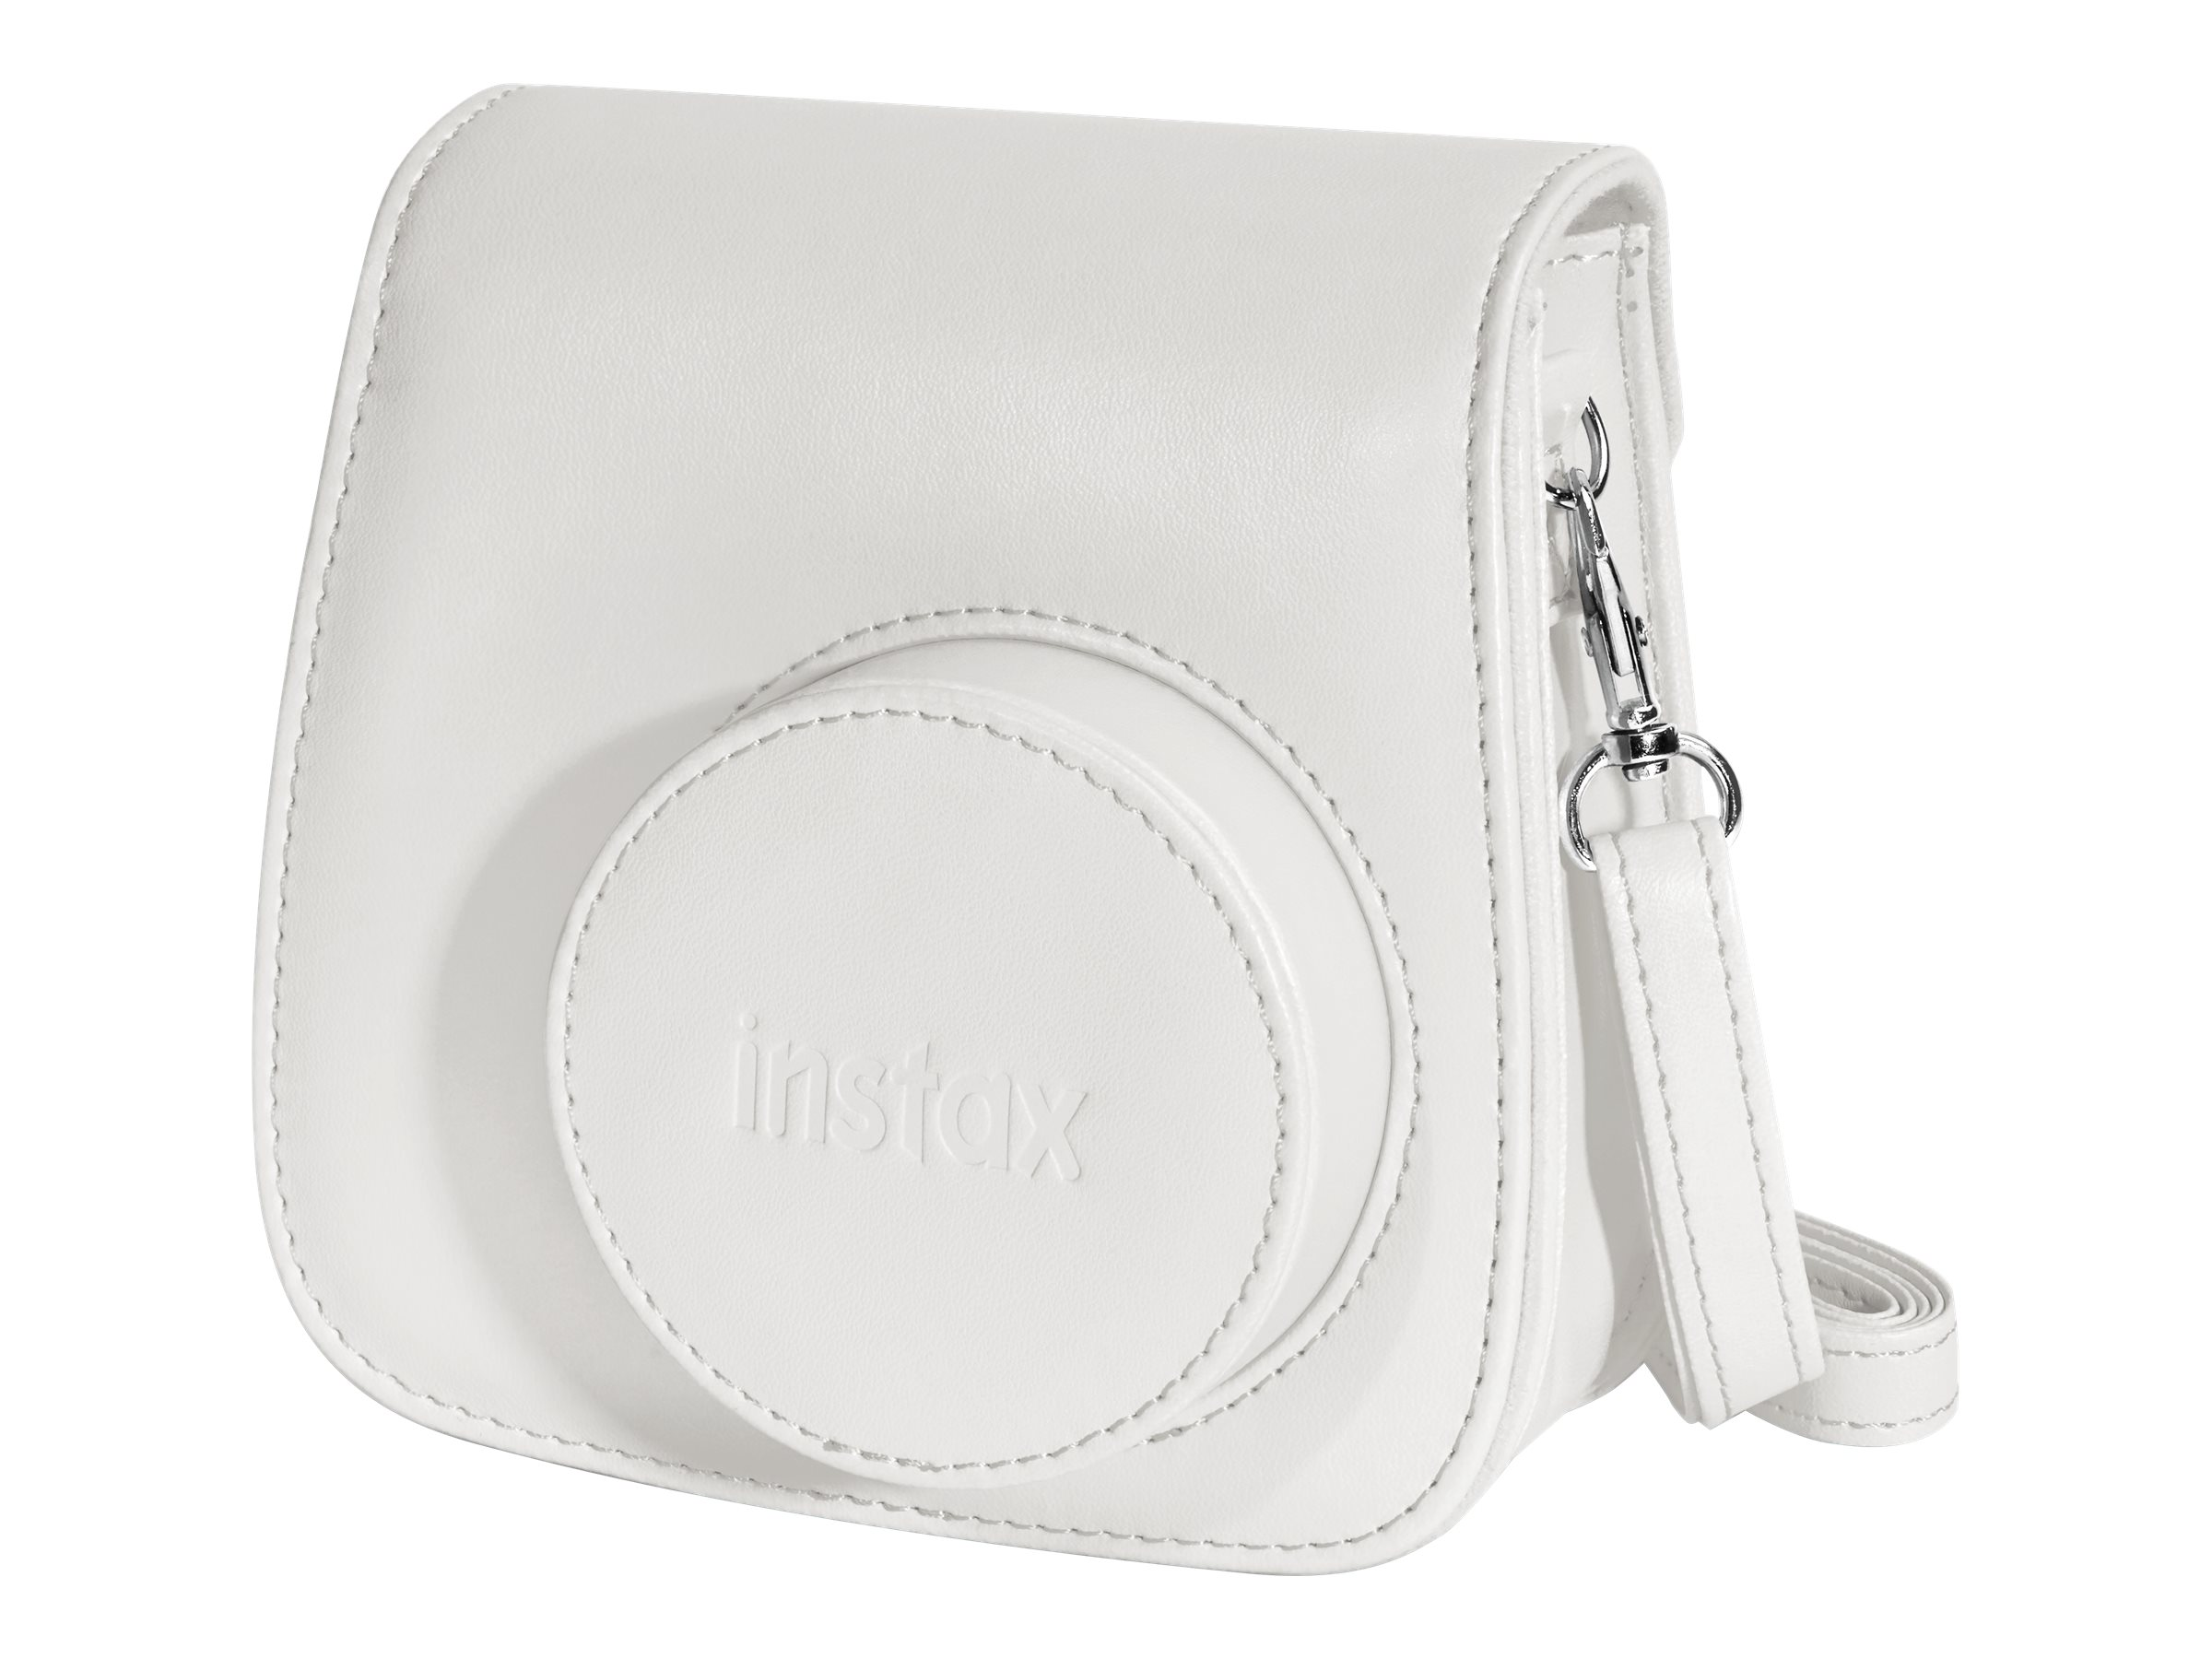 Fujifilm Instax Groovy Camera Case w  Shoulder Strap for Instax Mini 8 Instant Camera, White, 600015375